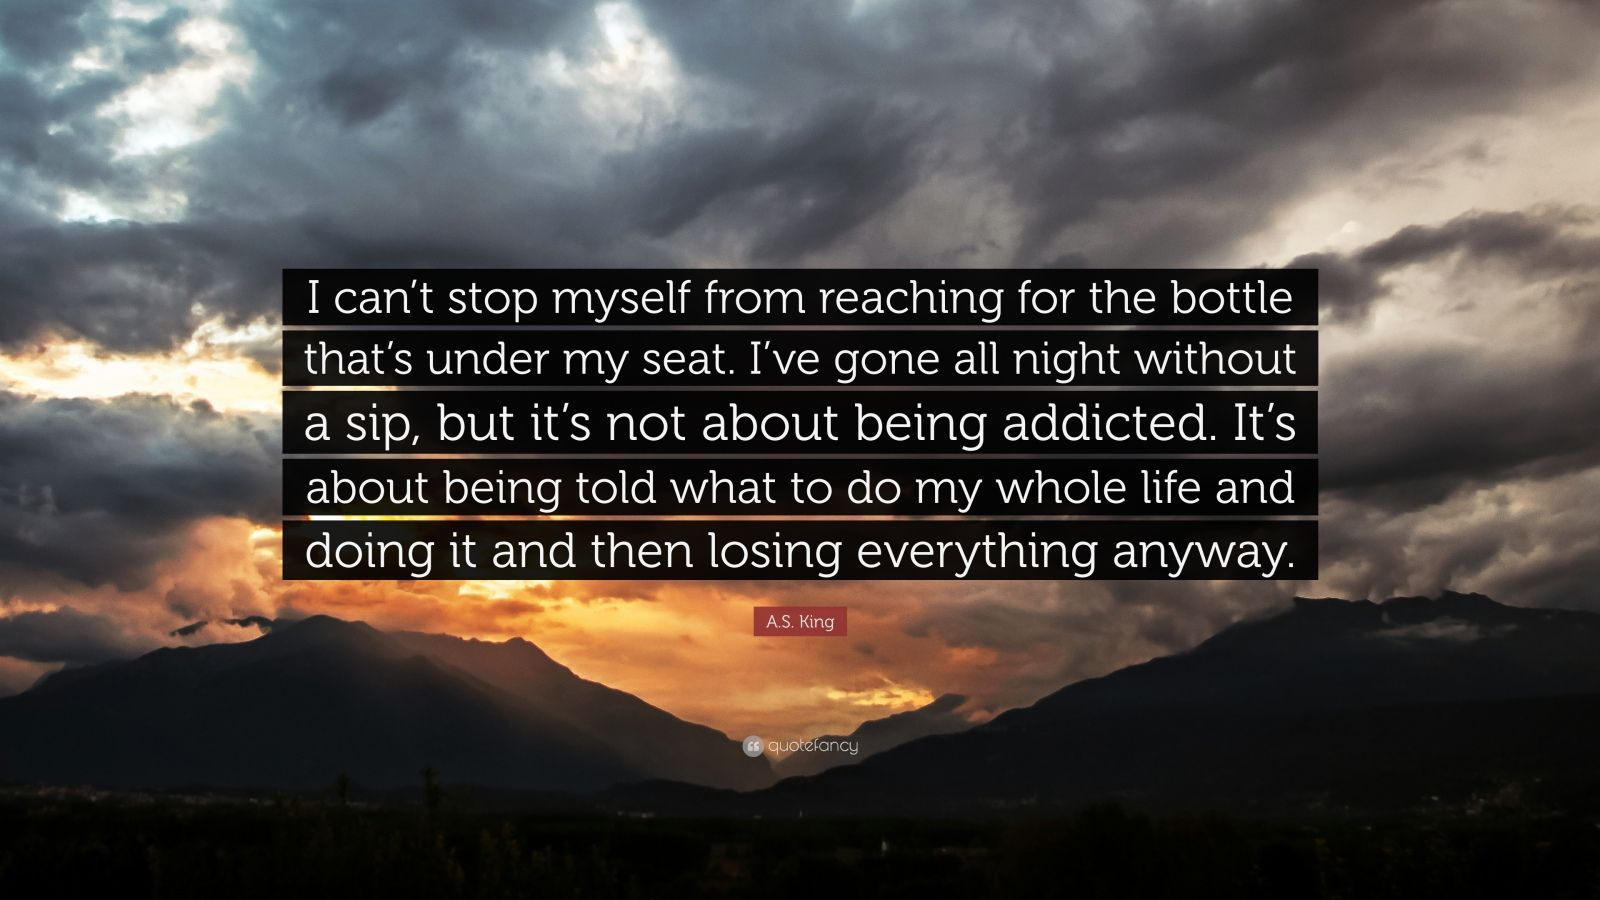 """A.S. King Quote: """"I can't stop myself from reaching for the bottle that's under my seat. I've gone all night without a sip, but it's not about being addicted. It's about being told what to do my whole life and doing it and then losing everything anyway."""""""